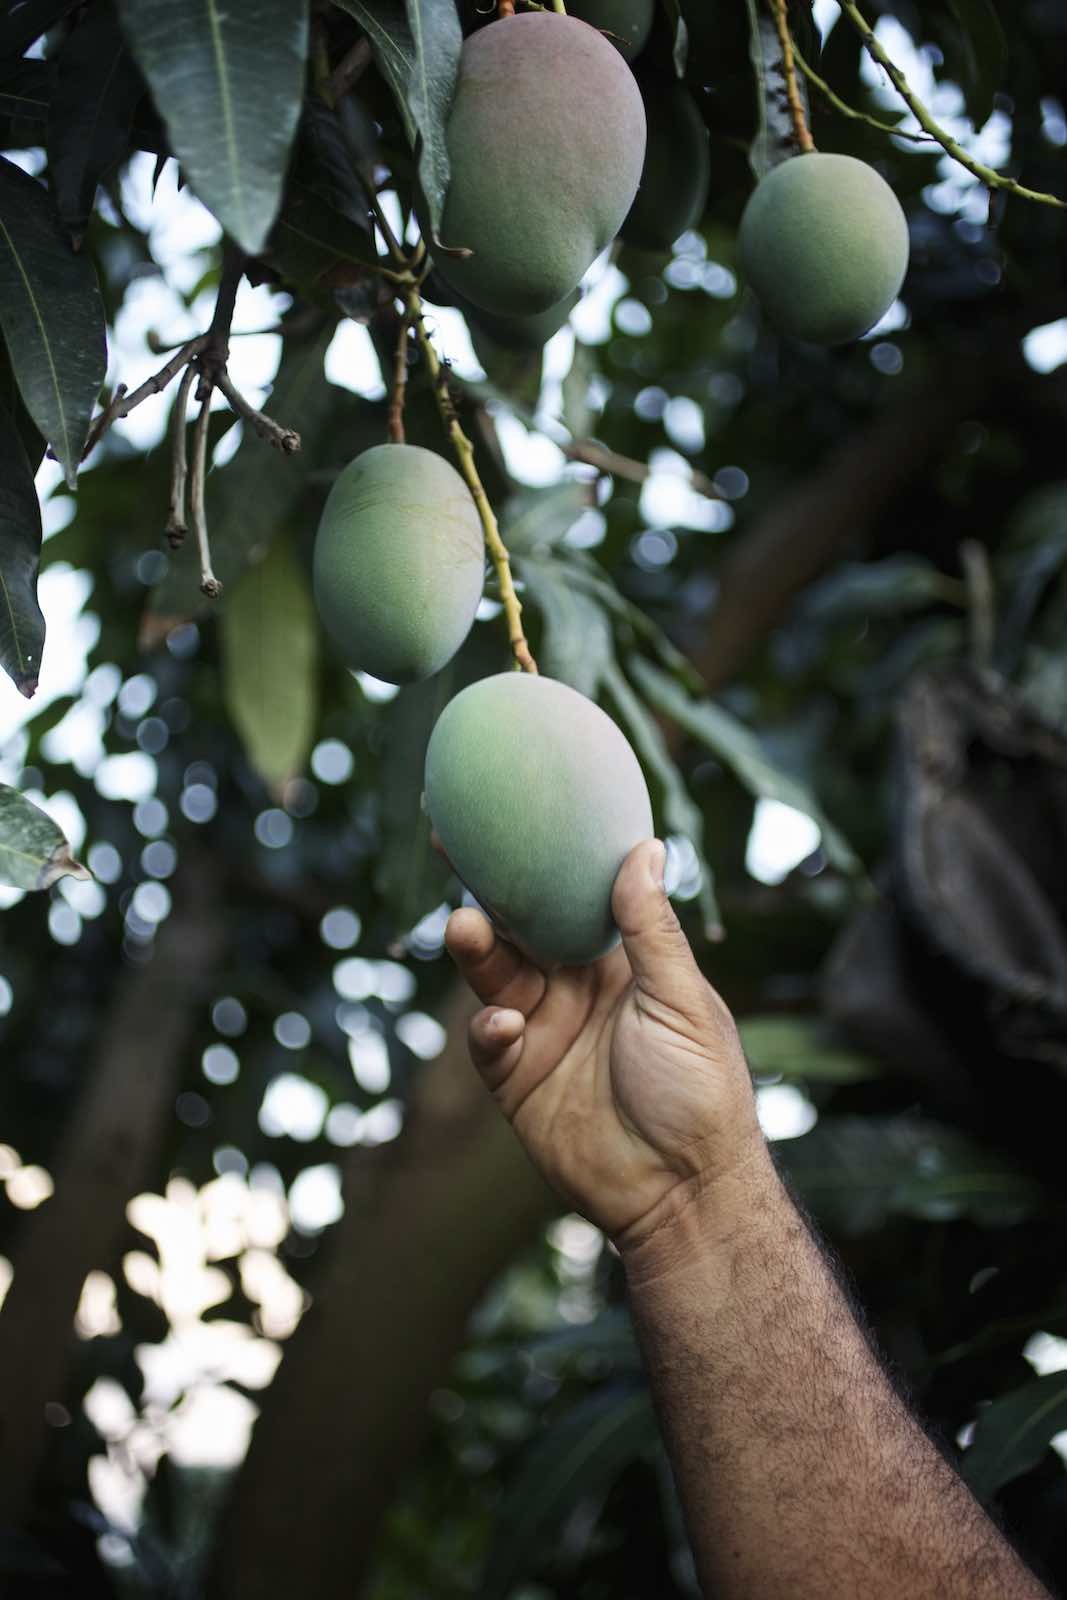 Hand reaching for a mango from a tree.